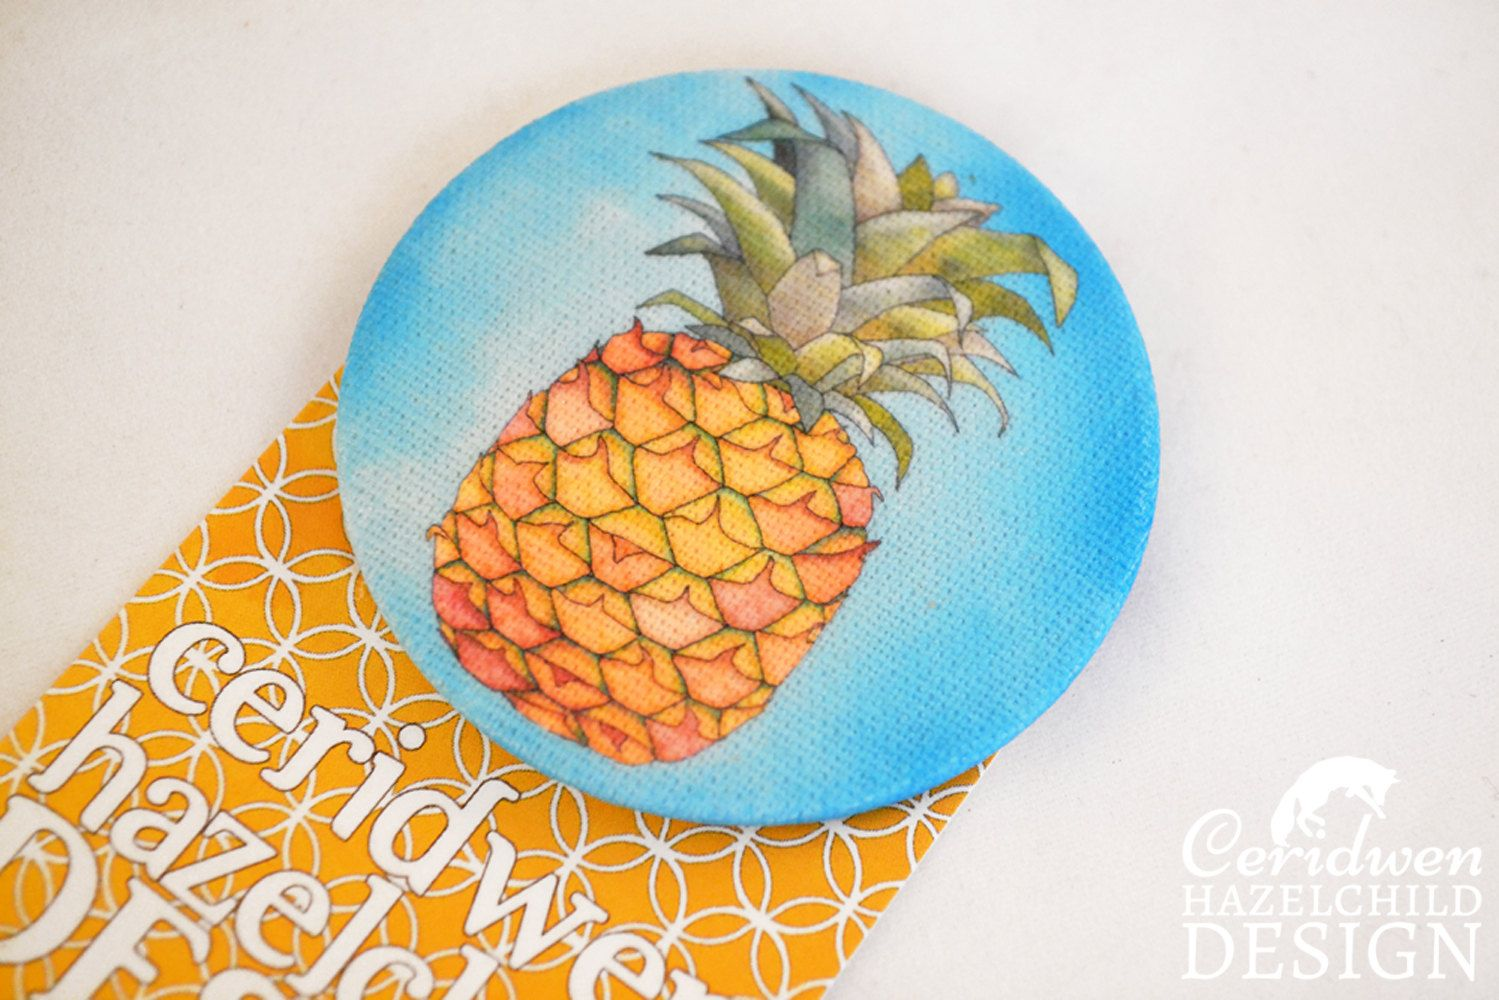 #Pineapple Fabric Badge Large Badge Pin Badge Fabric Covered Button Mothers Day Gift Ceridwen Hazelchild Design